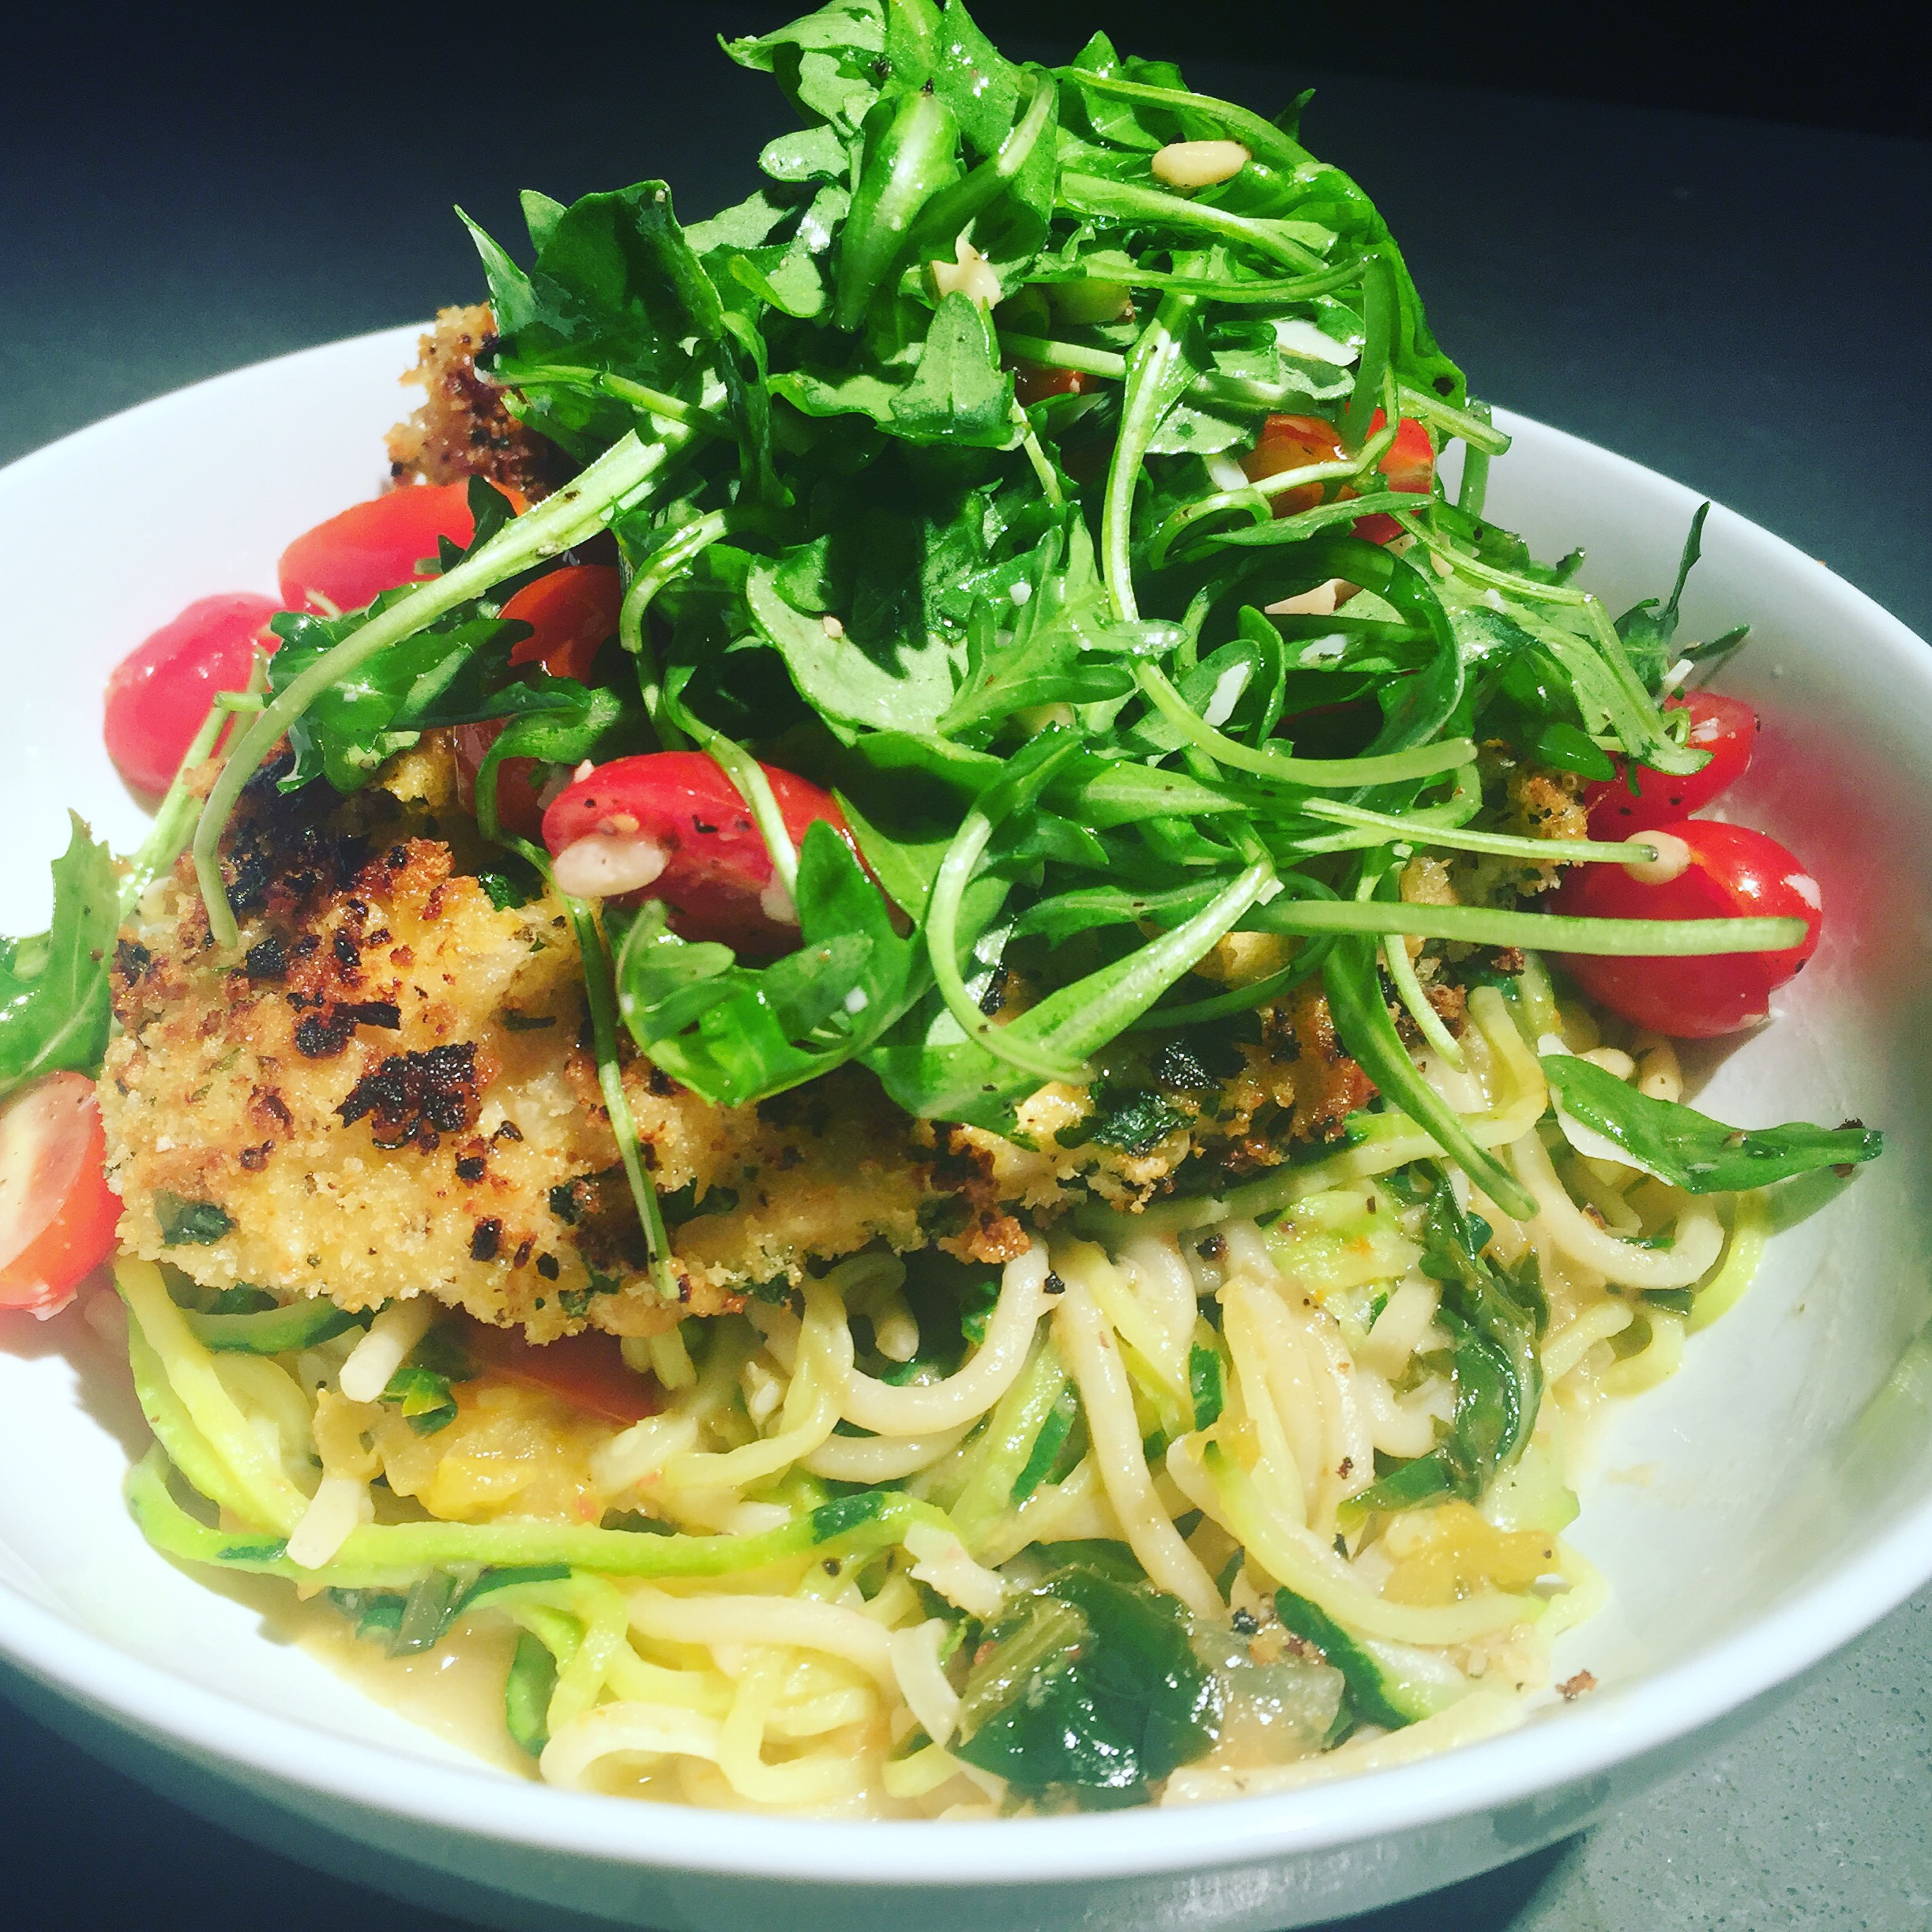 bistro gourmet at home : crispy chicken with rocket salad and pasta